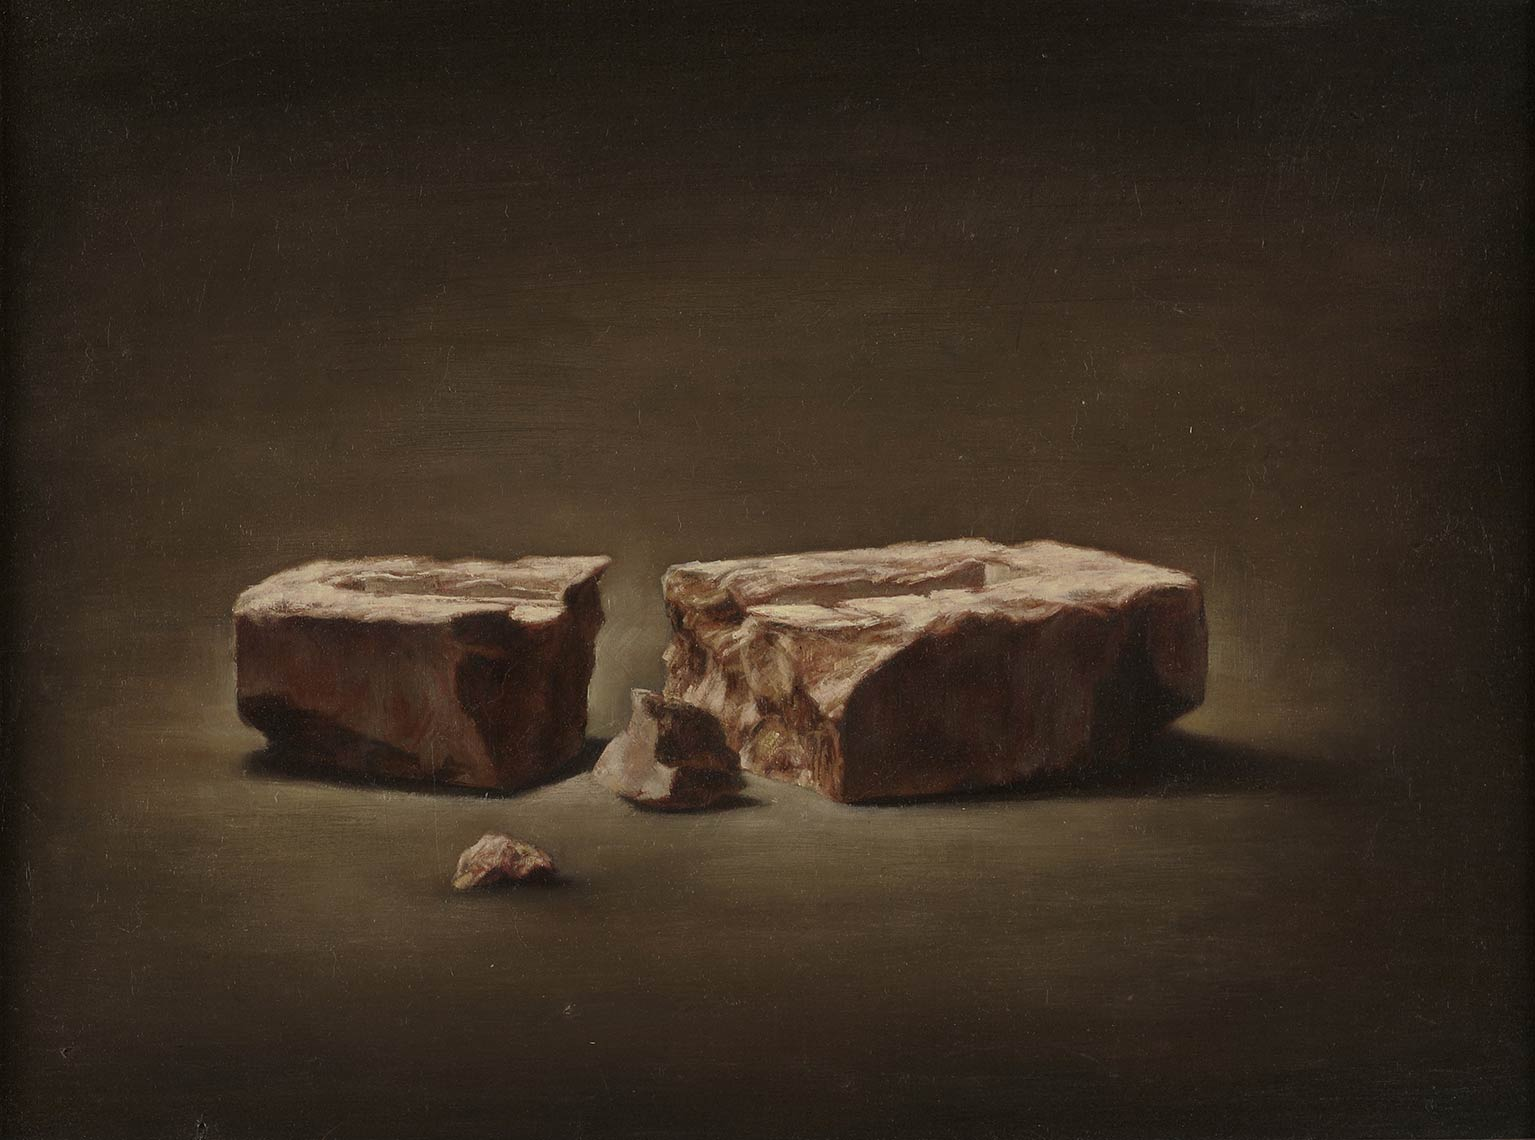 Broken-Brick_2007_oil-on-canvas_46x61_18x24_Available